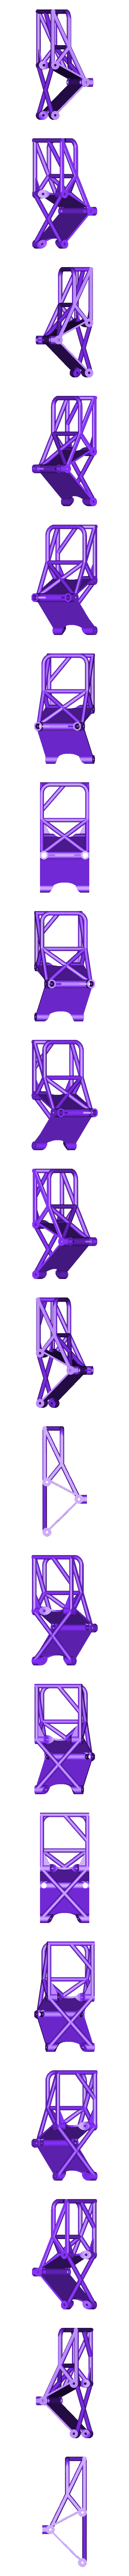 Frame05.stl Download free STL file Fully printable Monster Truck • 3D printer design, tahustvedt